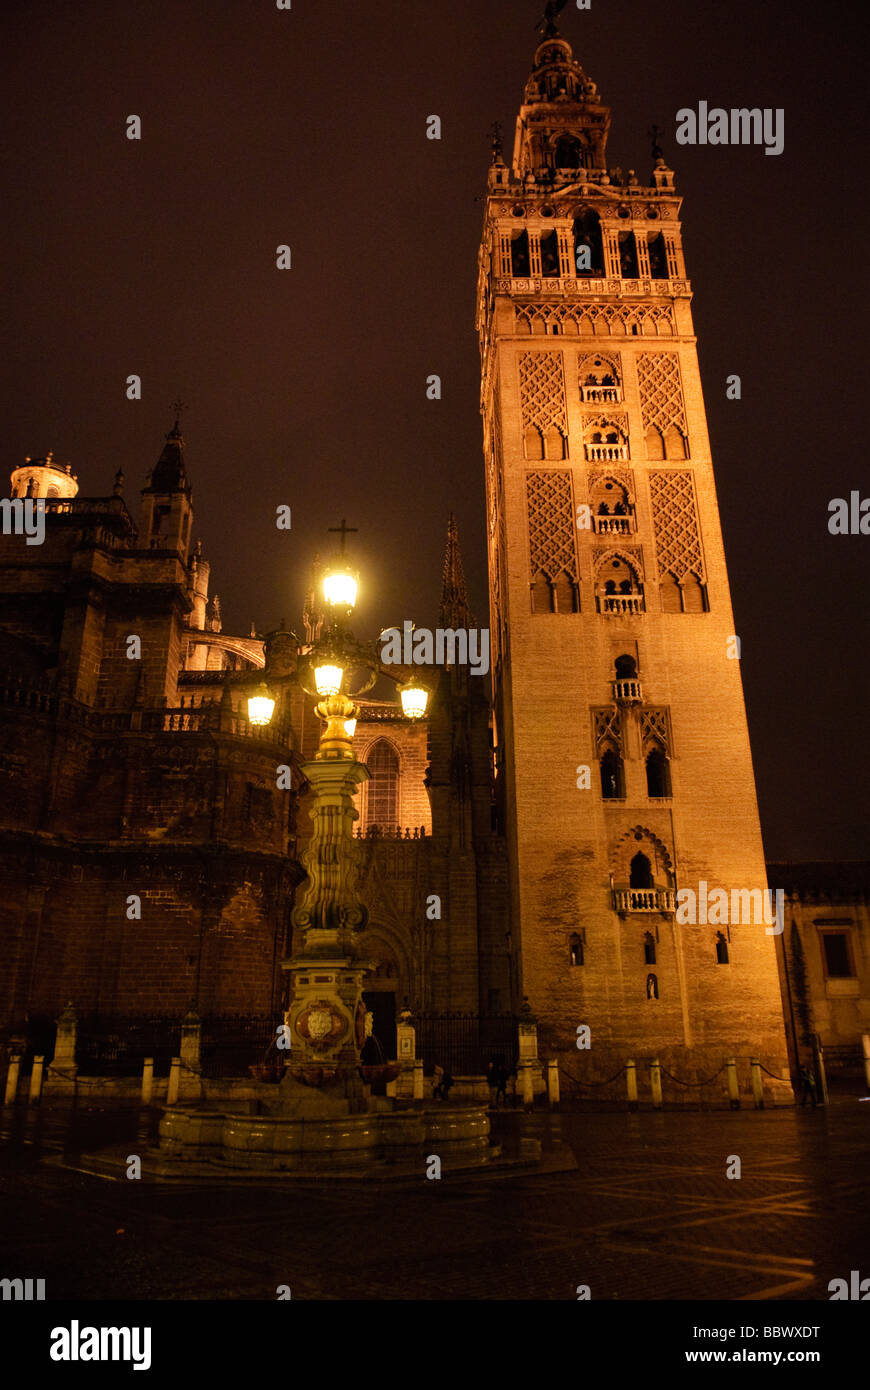 illuminated tower of La Giralda Cathedral at night in Sevilla Andalucia Spain - Stock Image